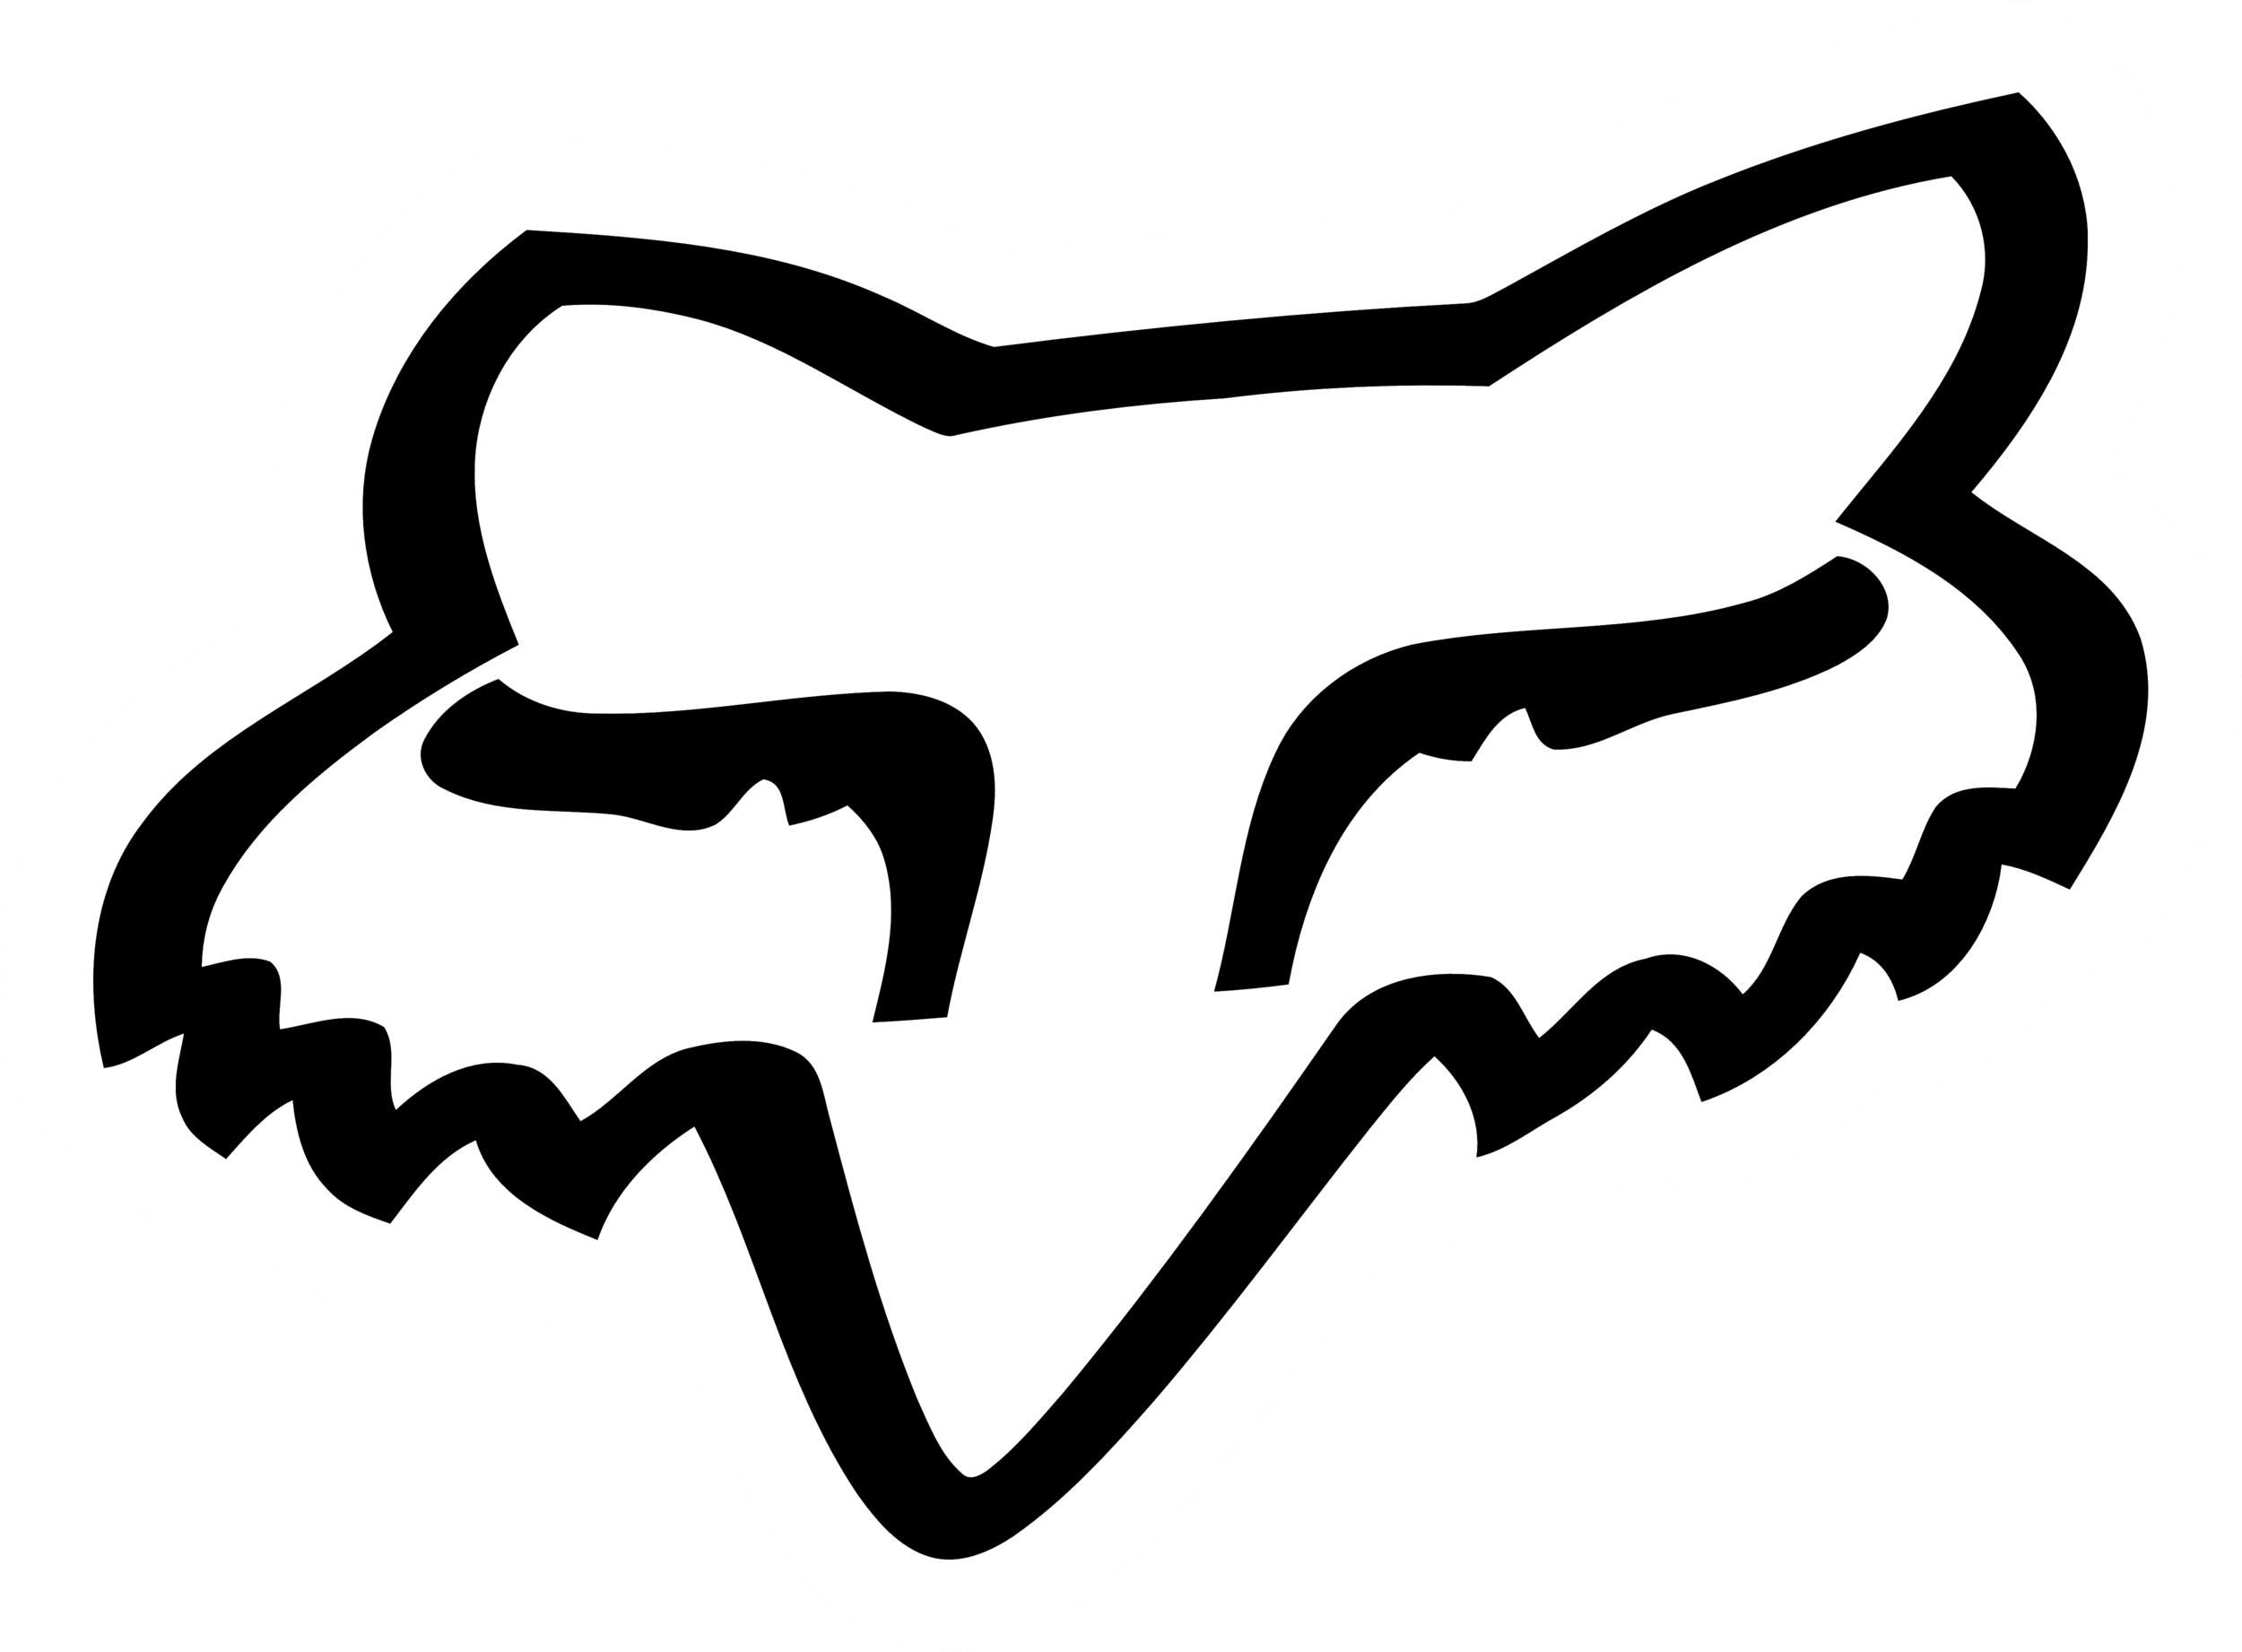 Fox_Racing_logo_head_white_black.png